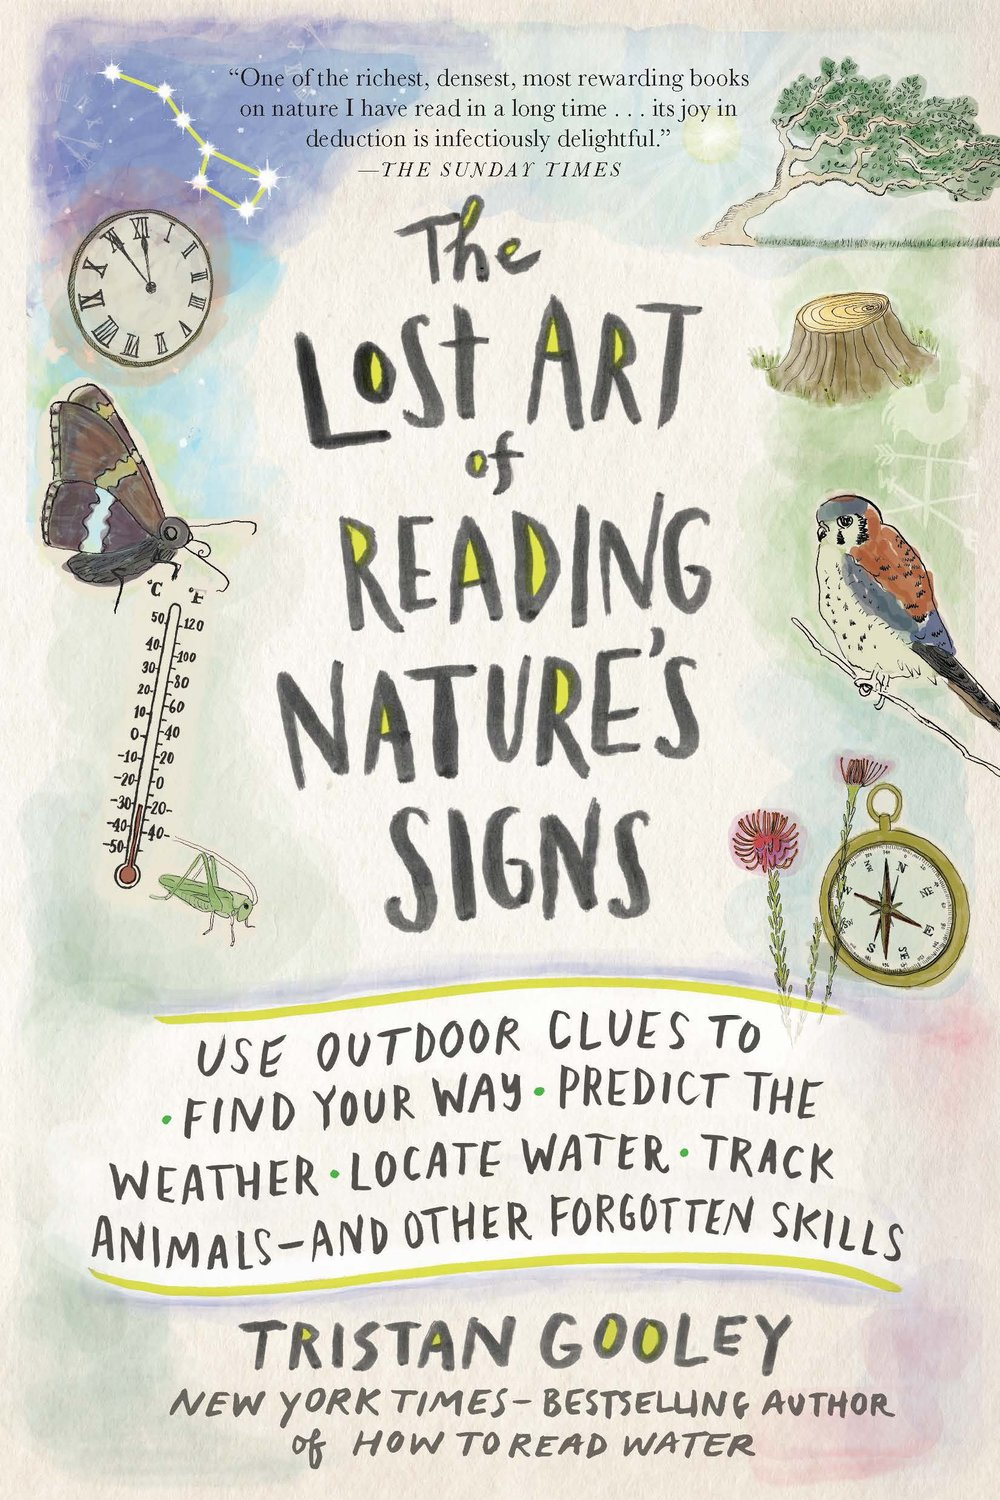 """The Lost Art of Reading Nature's Signs - by Tristan Gooley""""I recommend this book to anyone who enjoys discovery. One of my favorite aspects of landscapes is that they are embedded with countless clues that, when taken as a whole, convey rich and otherwise overlooked stories— and this book teaches you how to read those stories. Although Tristan's """"Holmesian"""" process is nature-based, it provides a lens that empowers readers to appreciate more of the world wherever they are, whether it be urban or undeveloped.""""- Nadja Quiroz, Landscape Designer"""